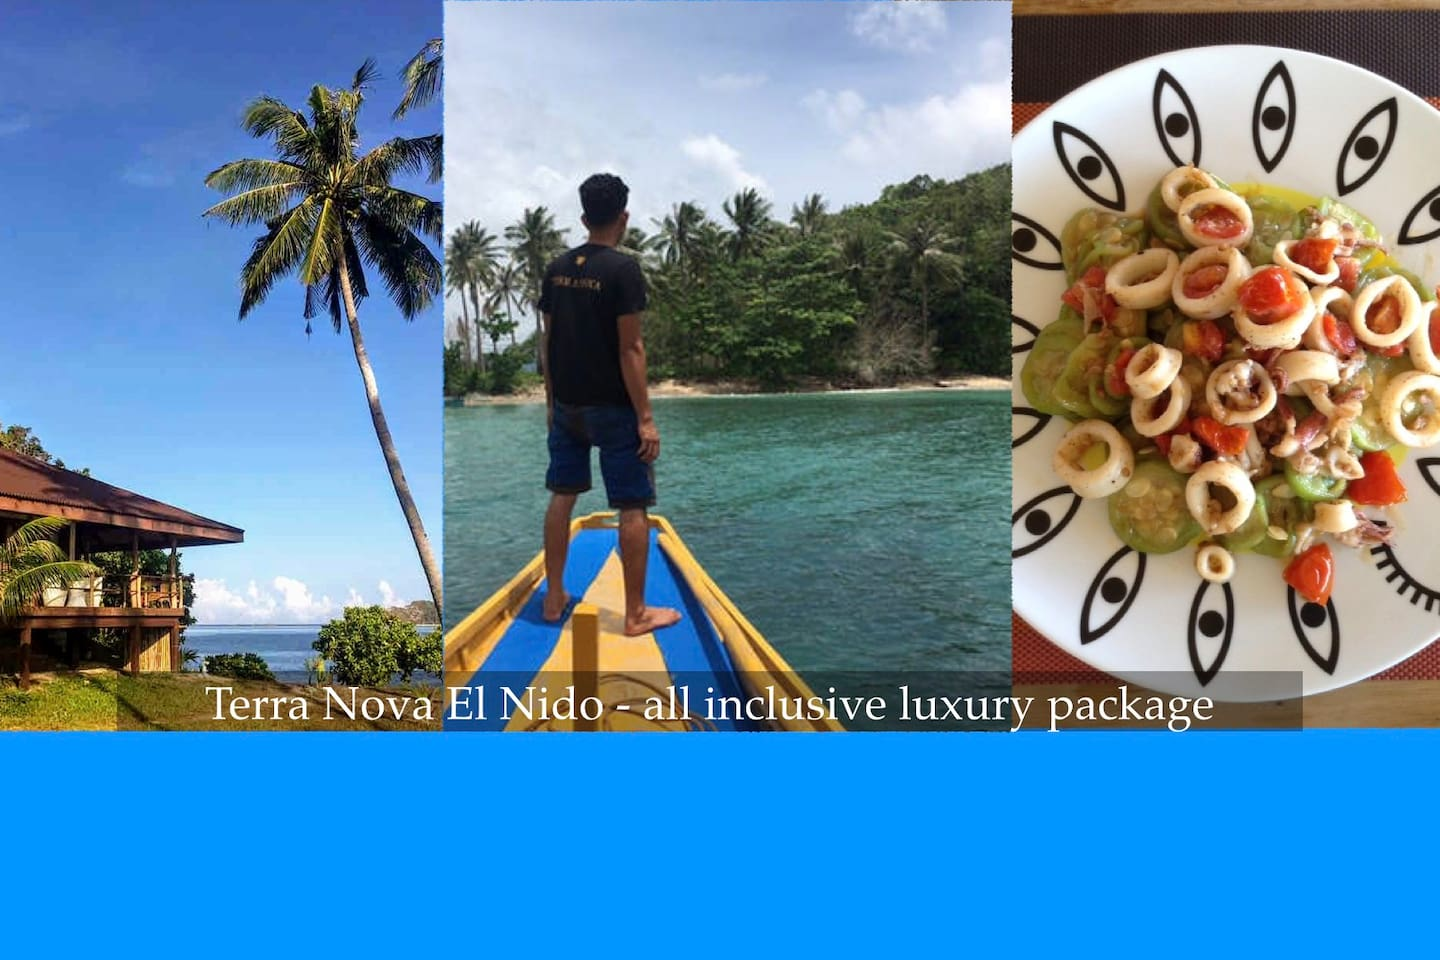 Terra Nova - El Nido Private Beachfront Villa #2 with All Inclusive Luxury Package